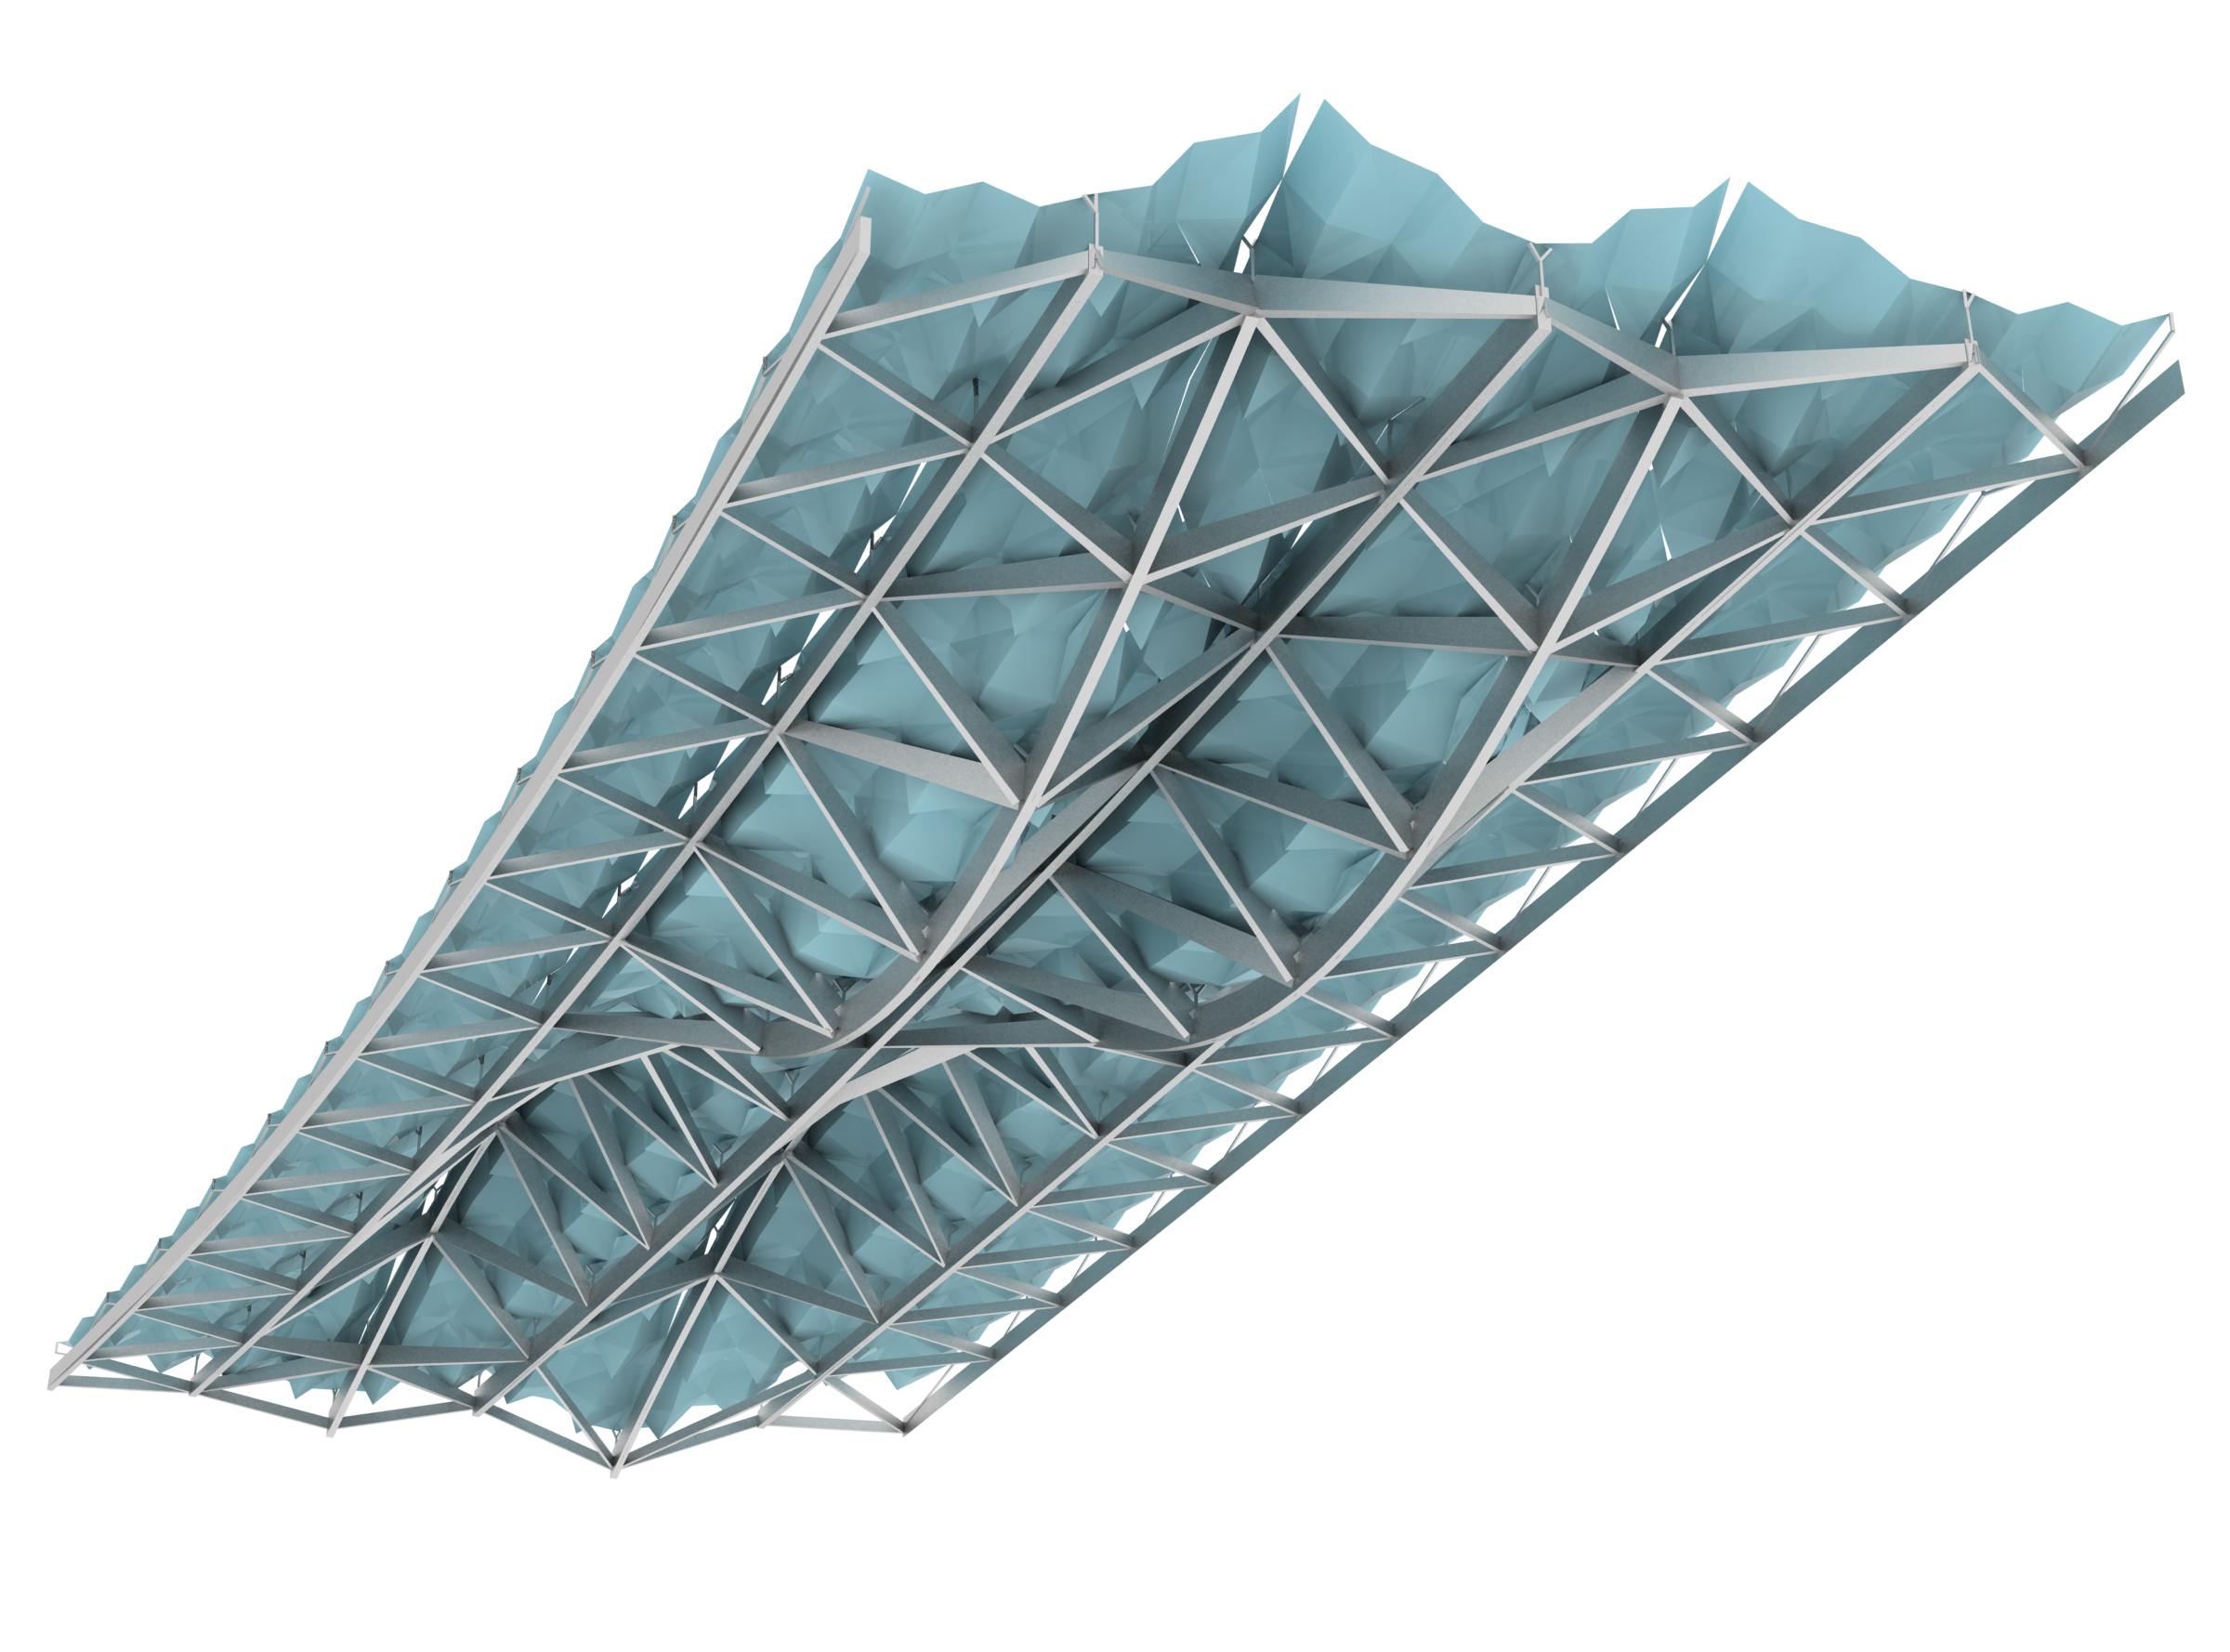 OCEANCN_diagram roof structure